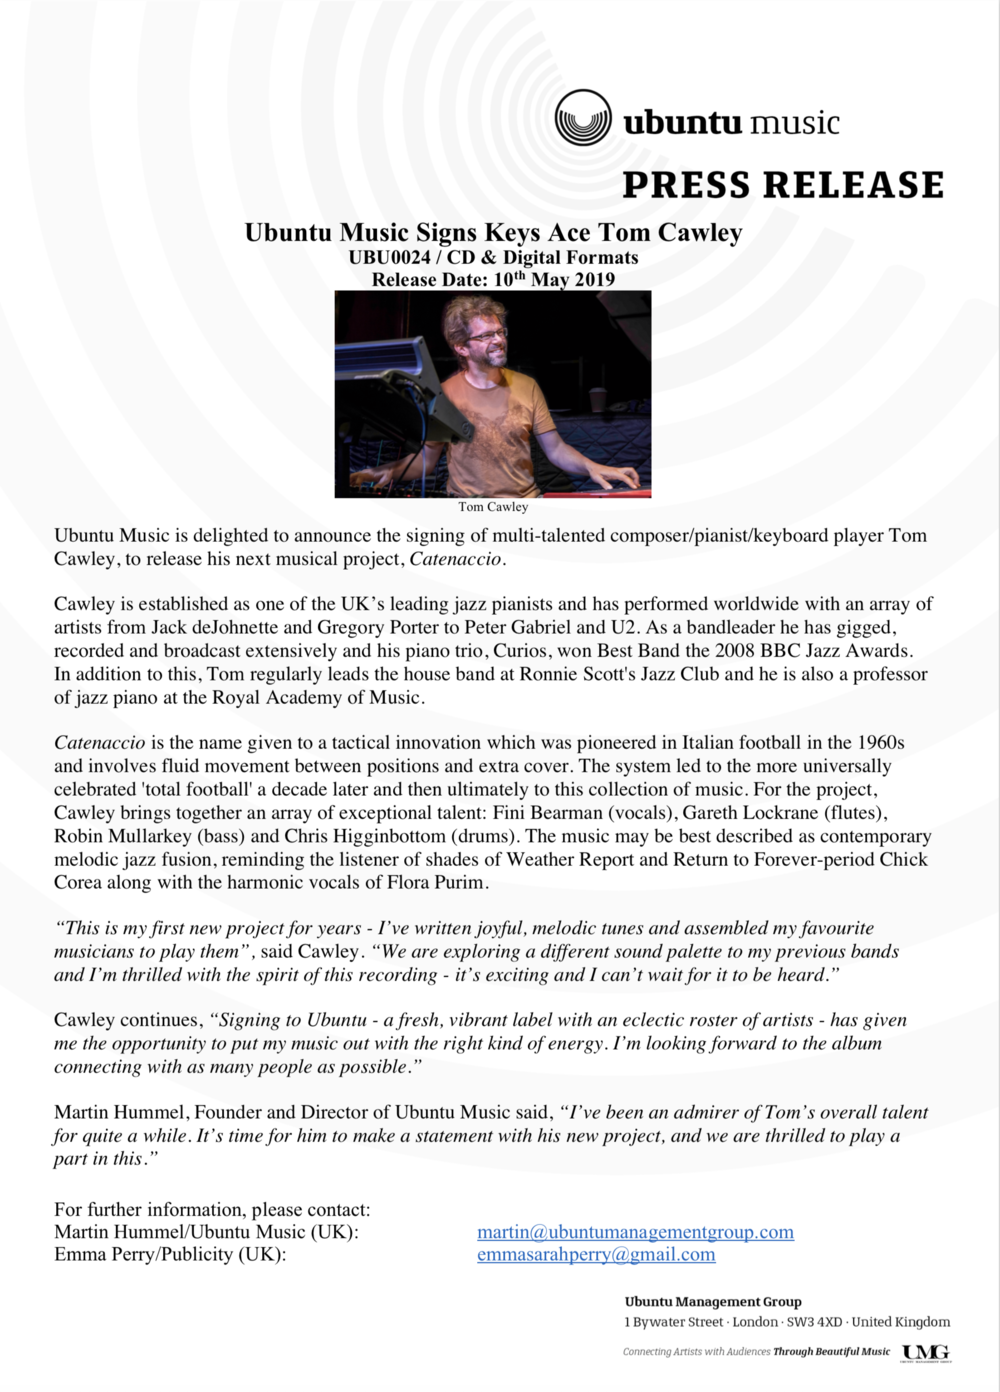 UM_Tom Cawley Signing Announcement_11.2.2019.png